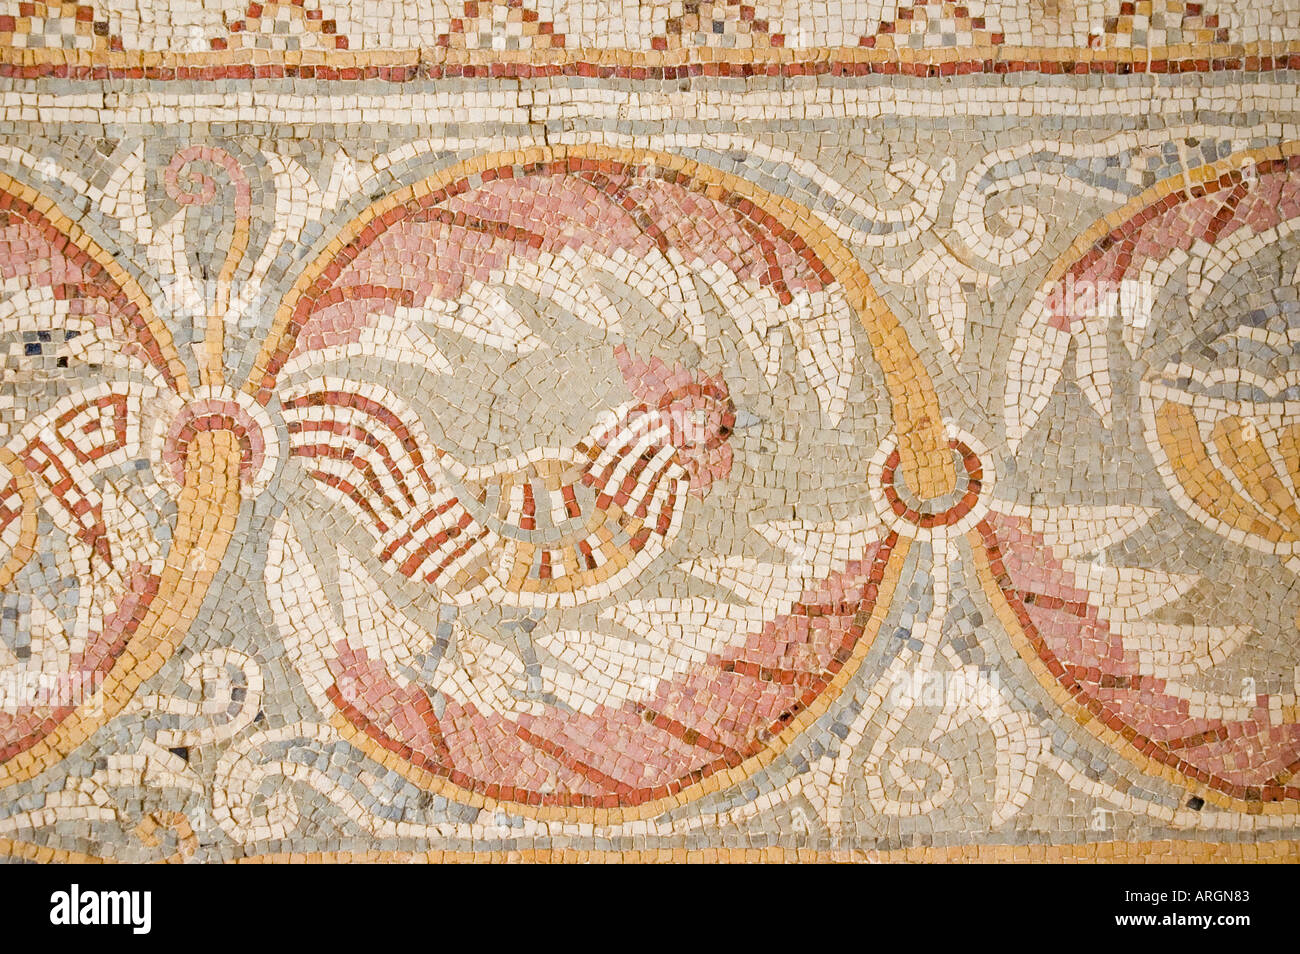 Mosaic fragments in the Church of the Virgin Mary, Madaba, Hashemite Kingdom of Jordan, Middle East. DSC_5344 - Stock Image